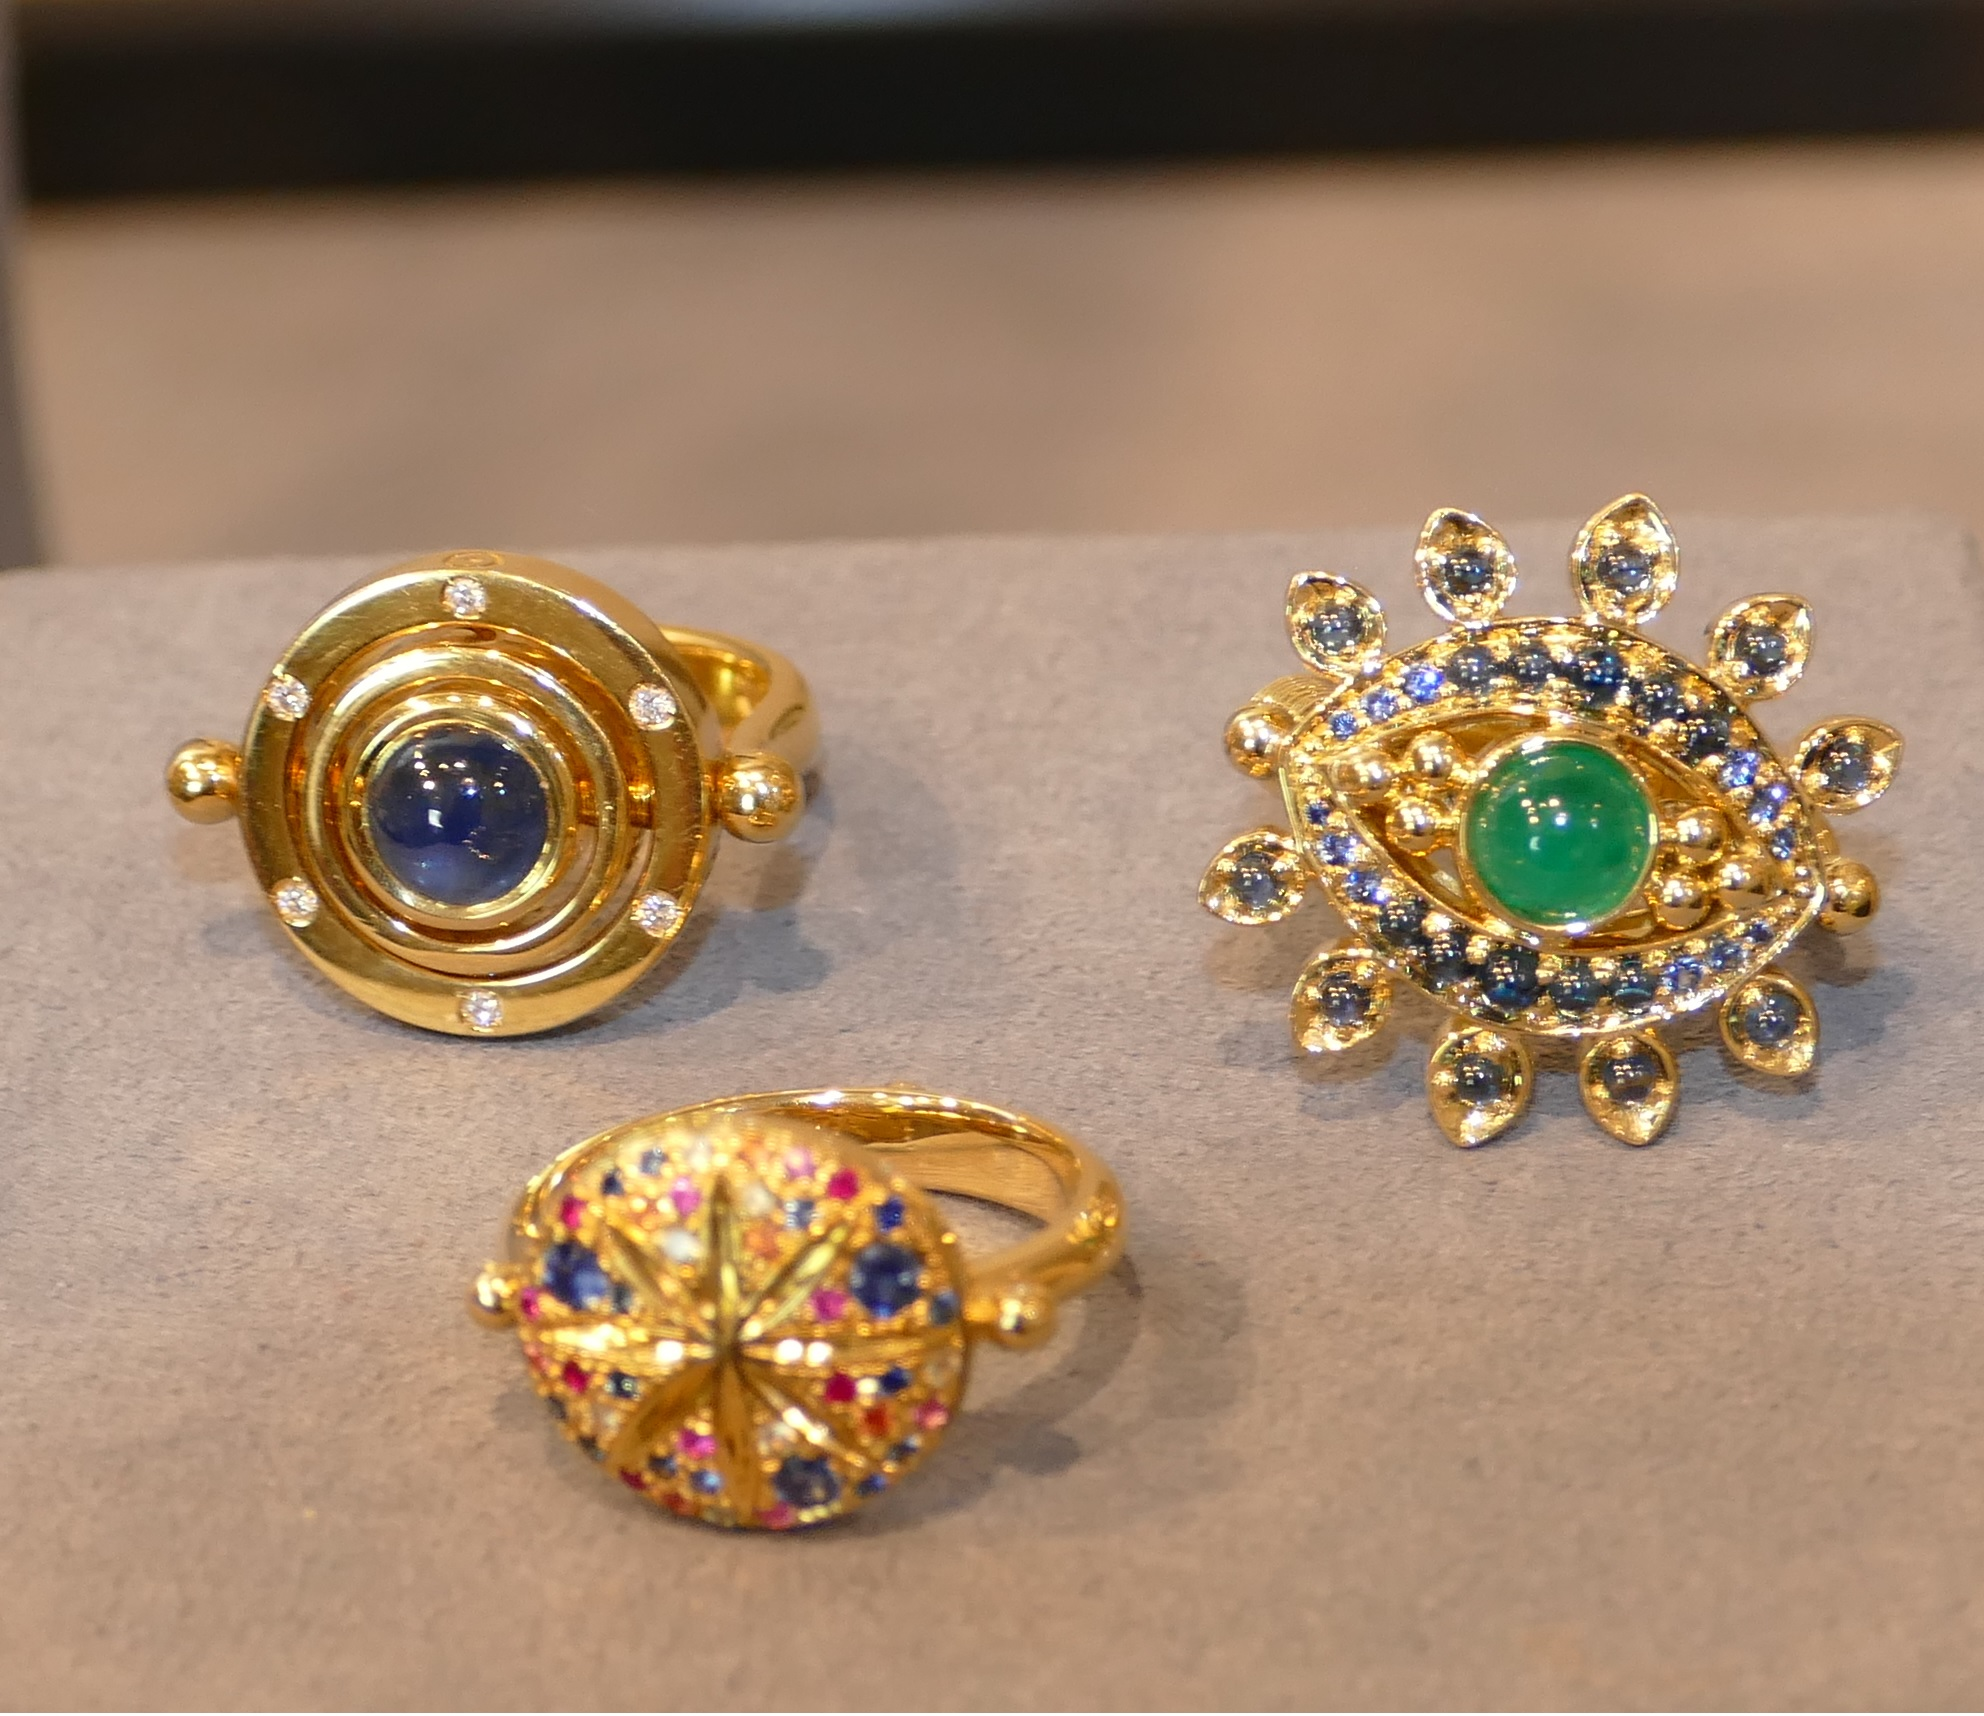 TEMPLE ST. CLAIR: EVIL EYE RING, SORCERER'S RING,